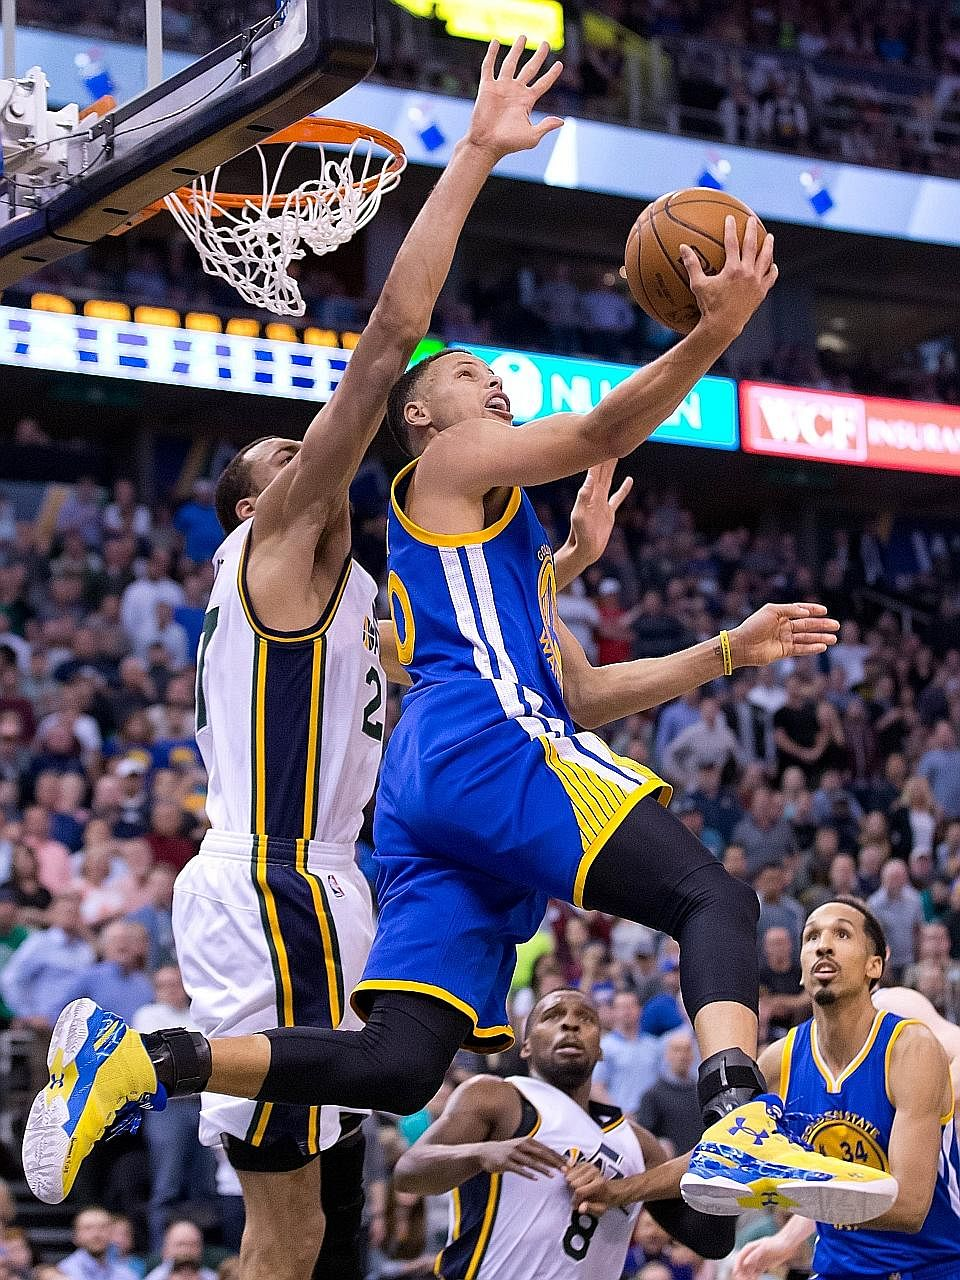 Golden State guard Stephen Curry going up for a shot as Utah centre Rudy Gobert blocks him. The Warriors won 103-96 in overtime and need just five more victories to exceed the Chicago Bulls' season best.